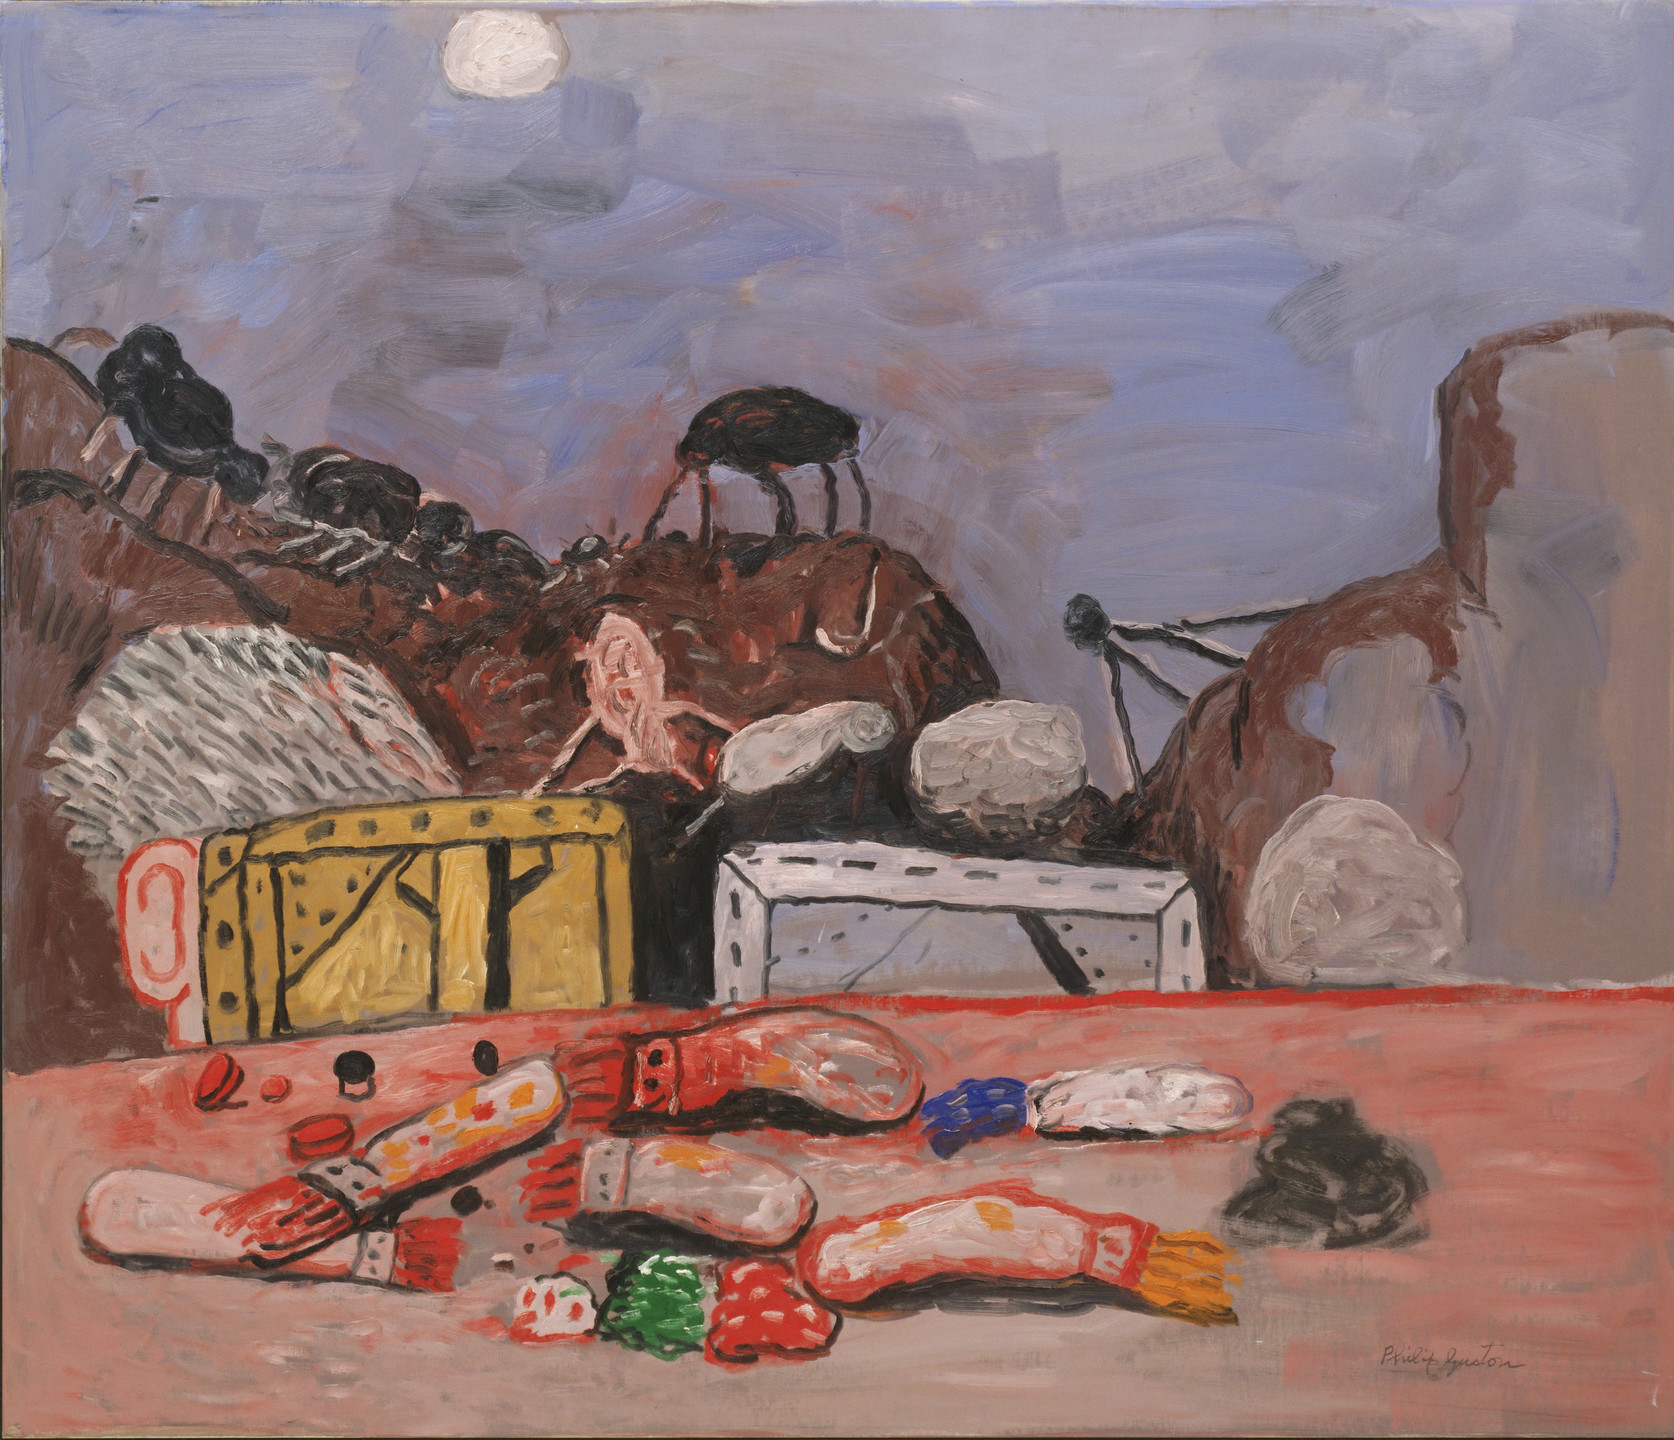 Philip Guston. Moon. 1979